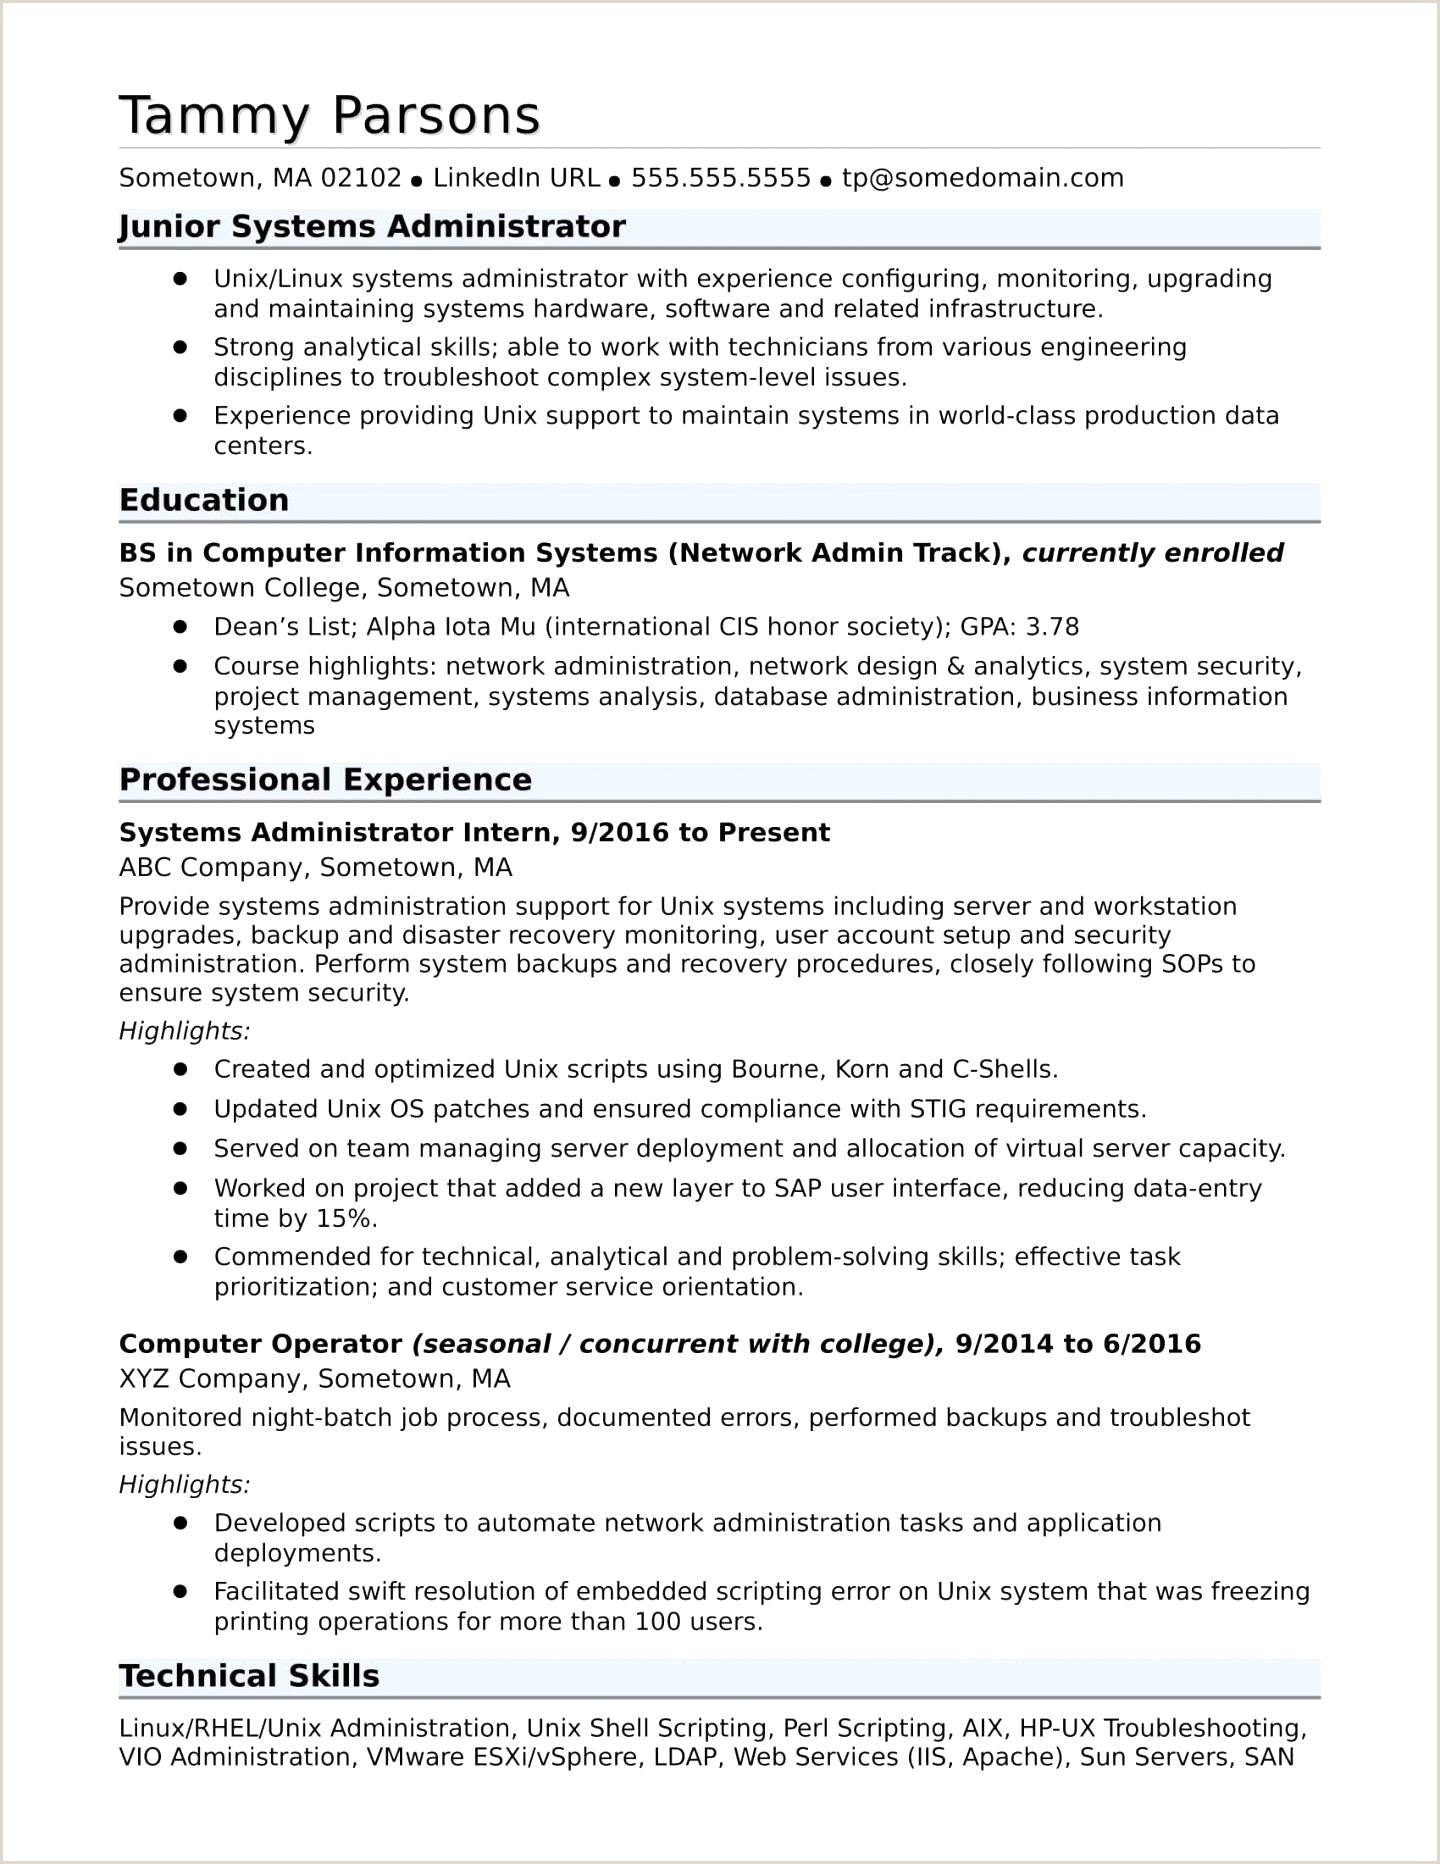 Pharmacy Tech Resume Entry Level Unique How Do I Find My Linkedin Url